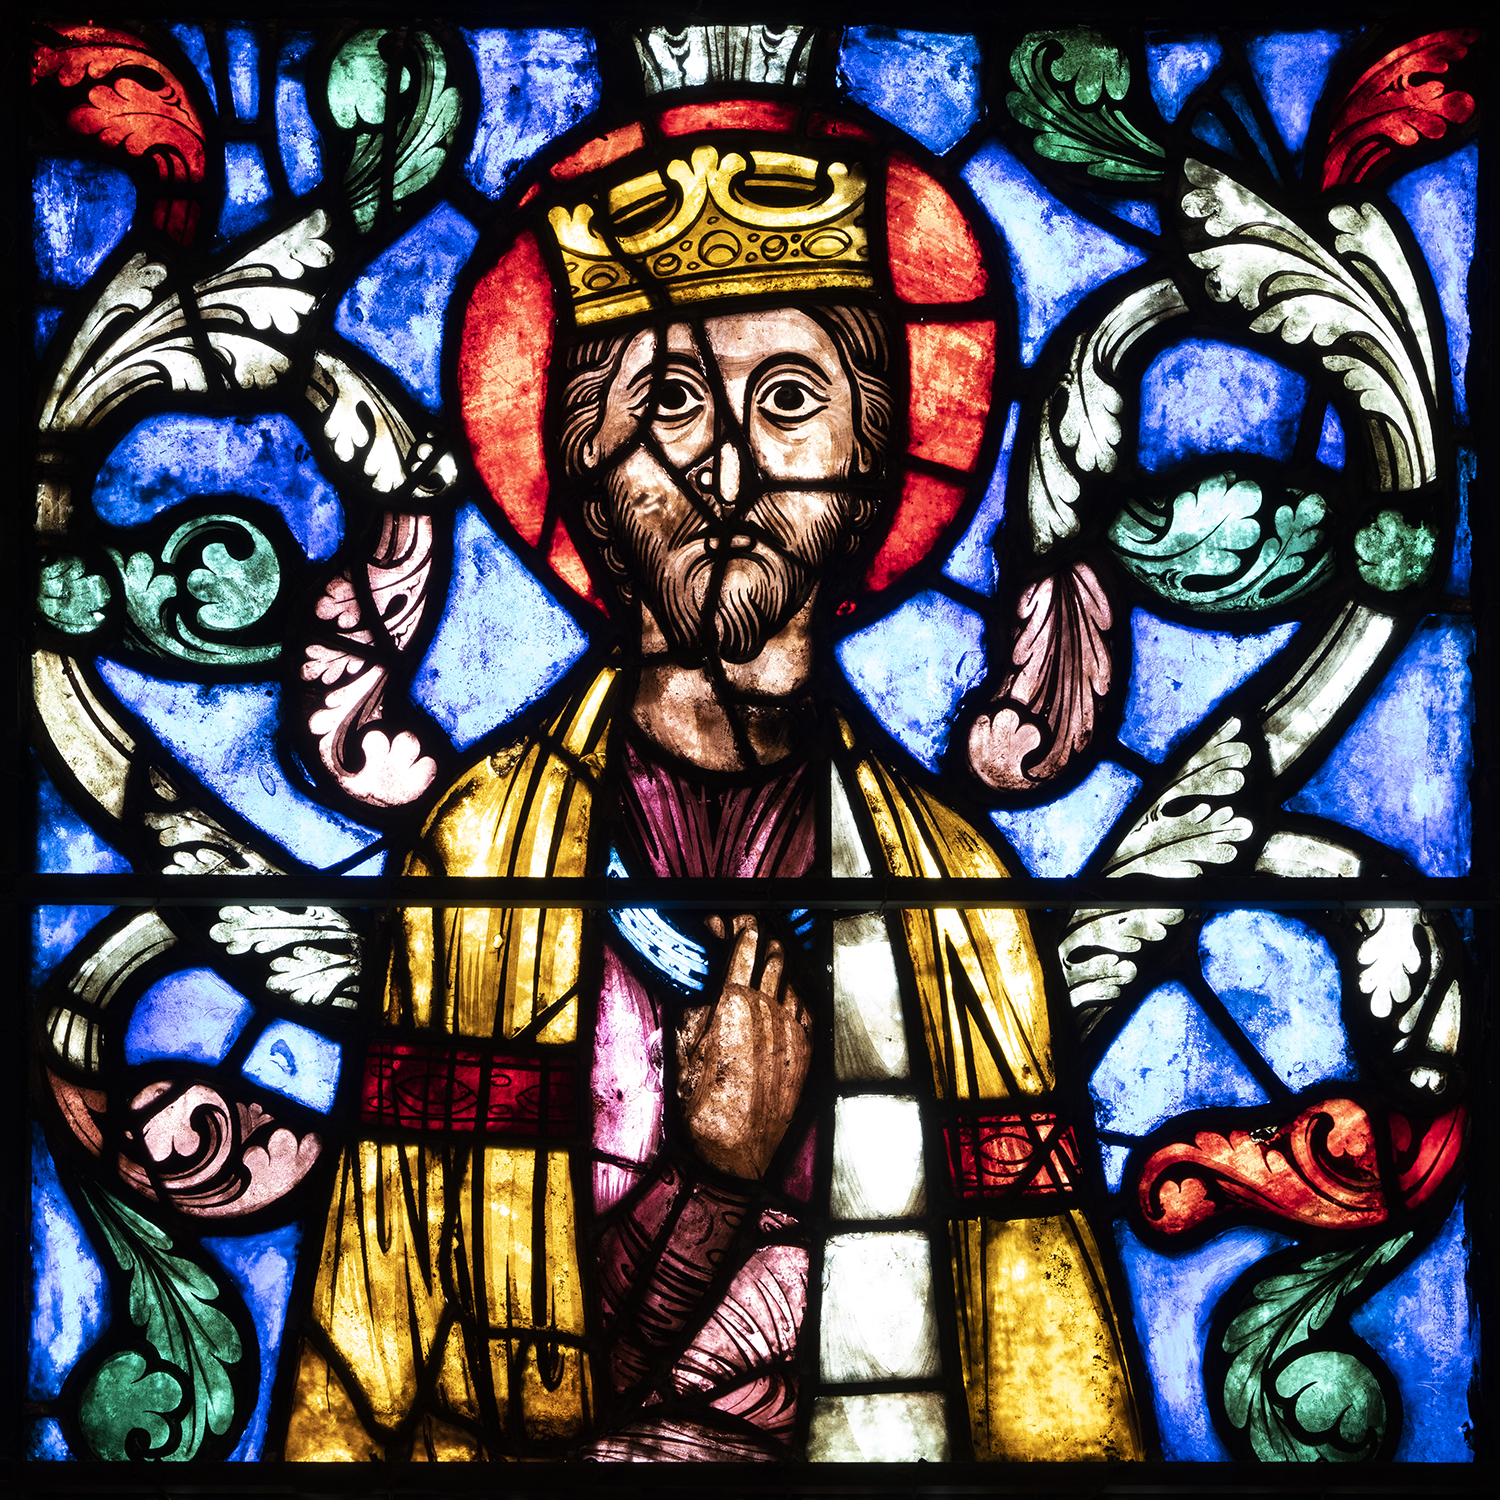 Figure 5: Panel depicting an unidentified king from a Tree of Jesse window, ca. 1210-1215, originally from the Cathedral of Soissons. Glencairn Museum (03.SG.229).